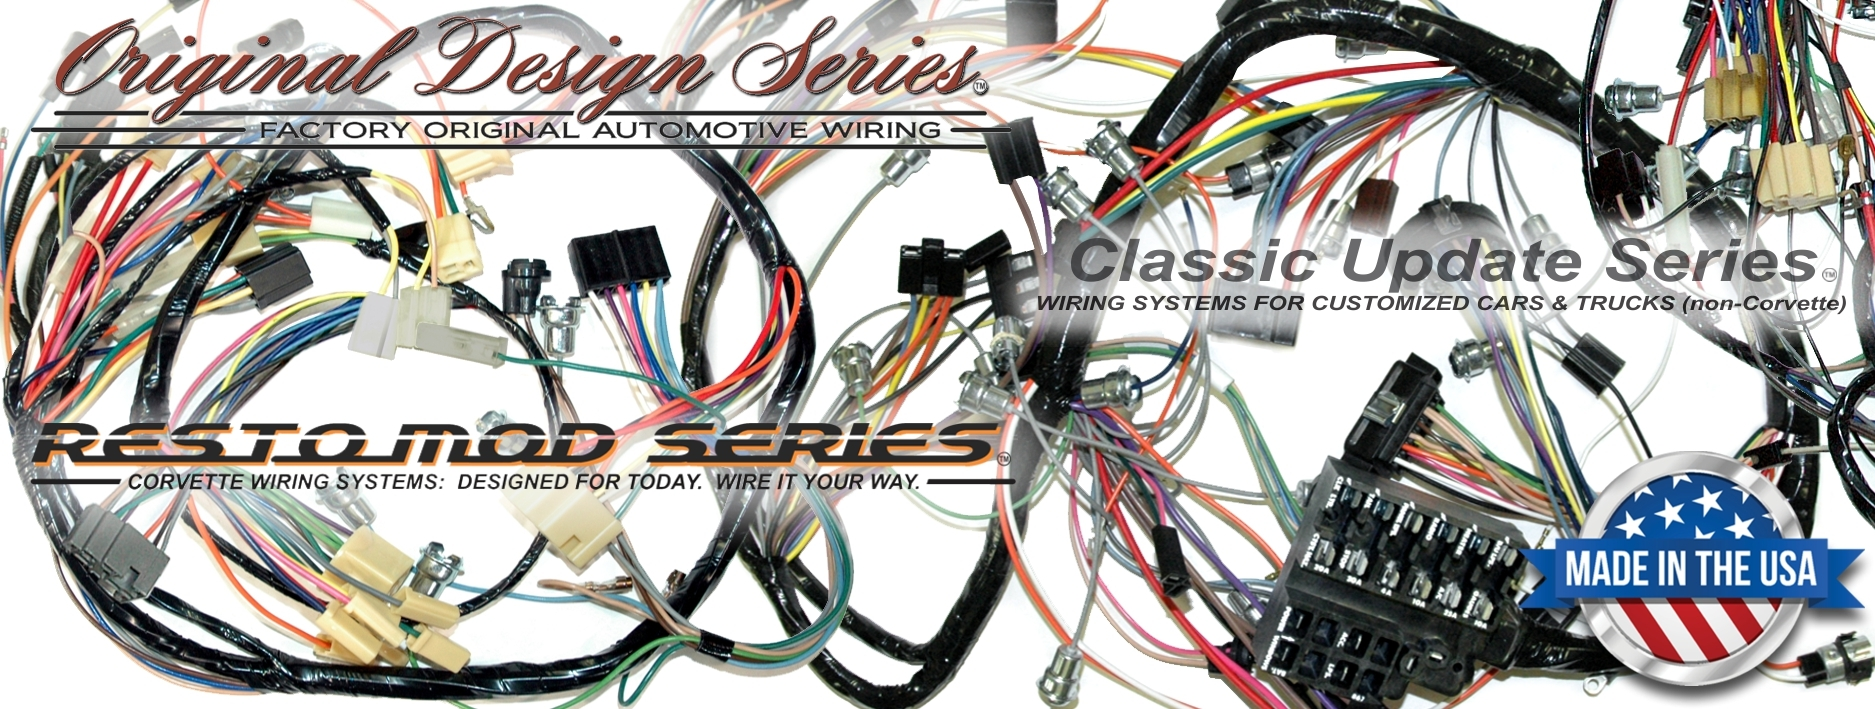 Exact OEM Reproduction Wiring Harnesses and RestoMod Wiring Systems for  Classic & Muscle CarsLectric Limited